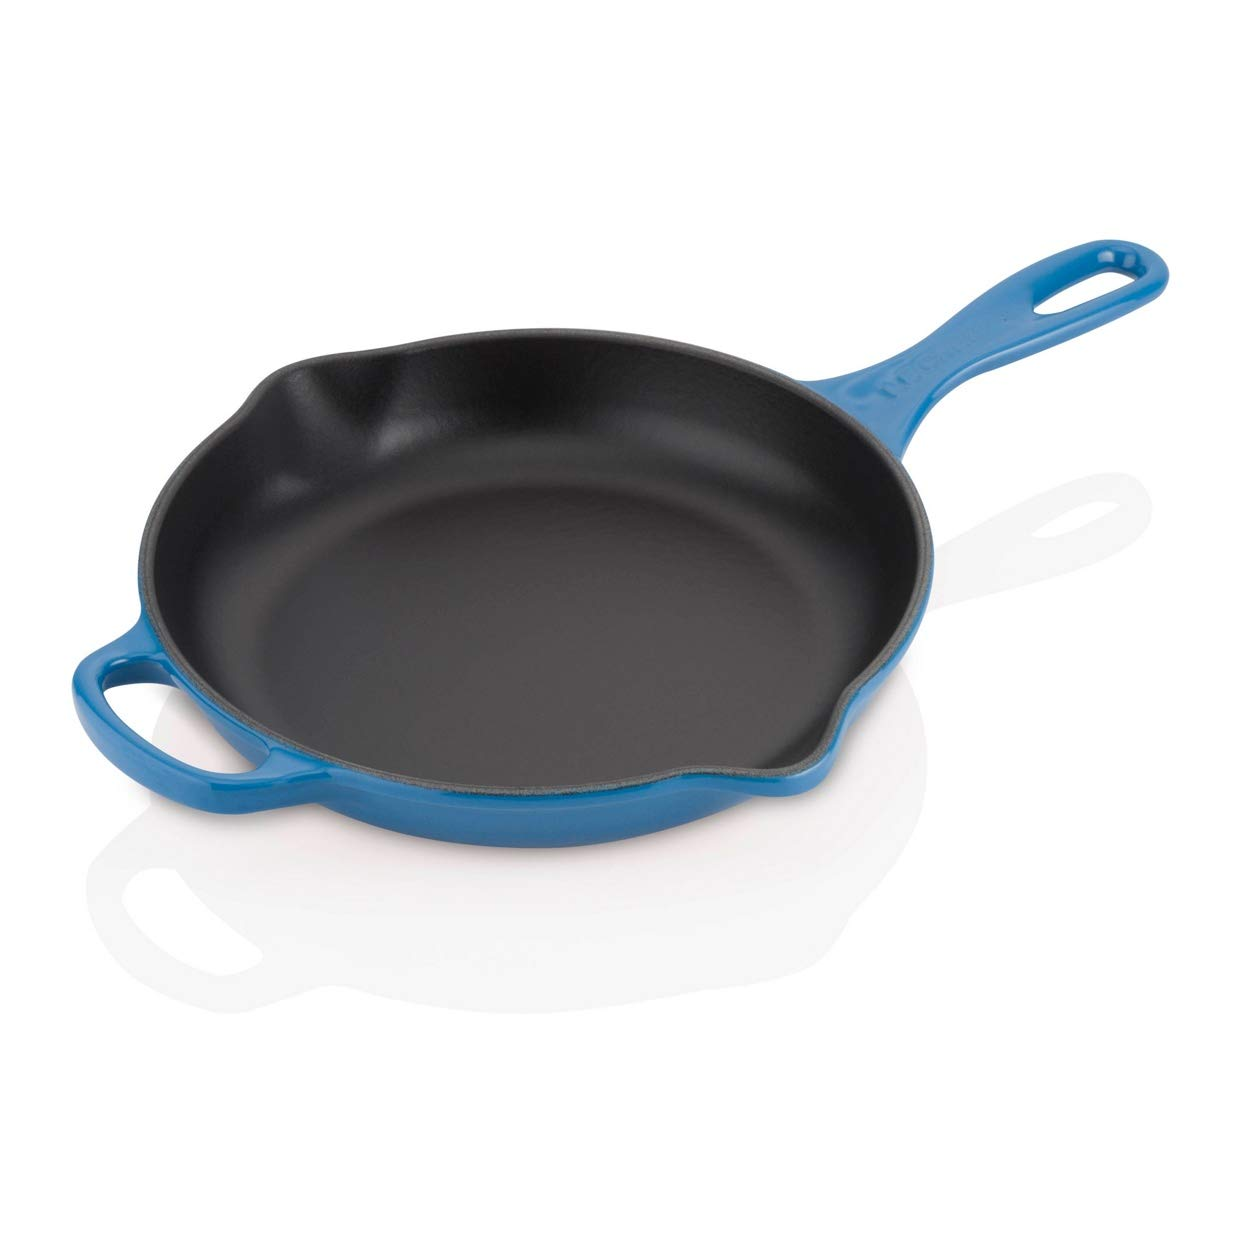 Le Creuset Signature Iron Handle Skillet, 9-Inch, Marseille